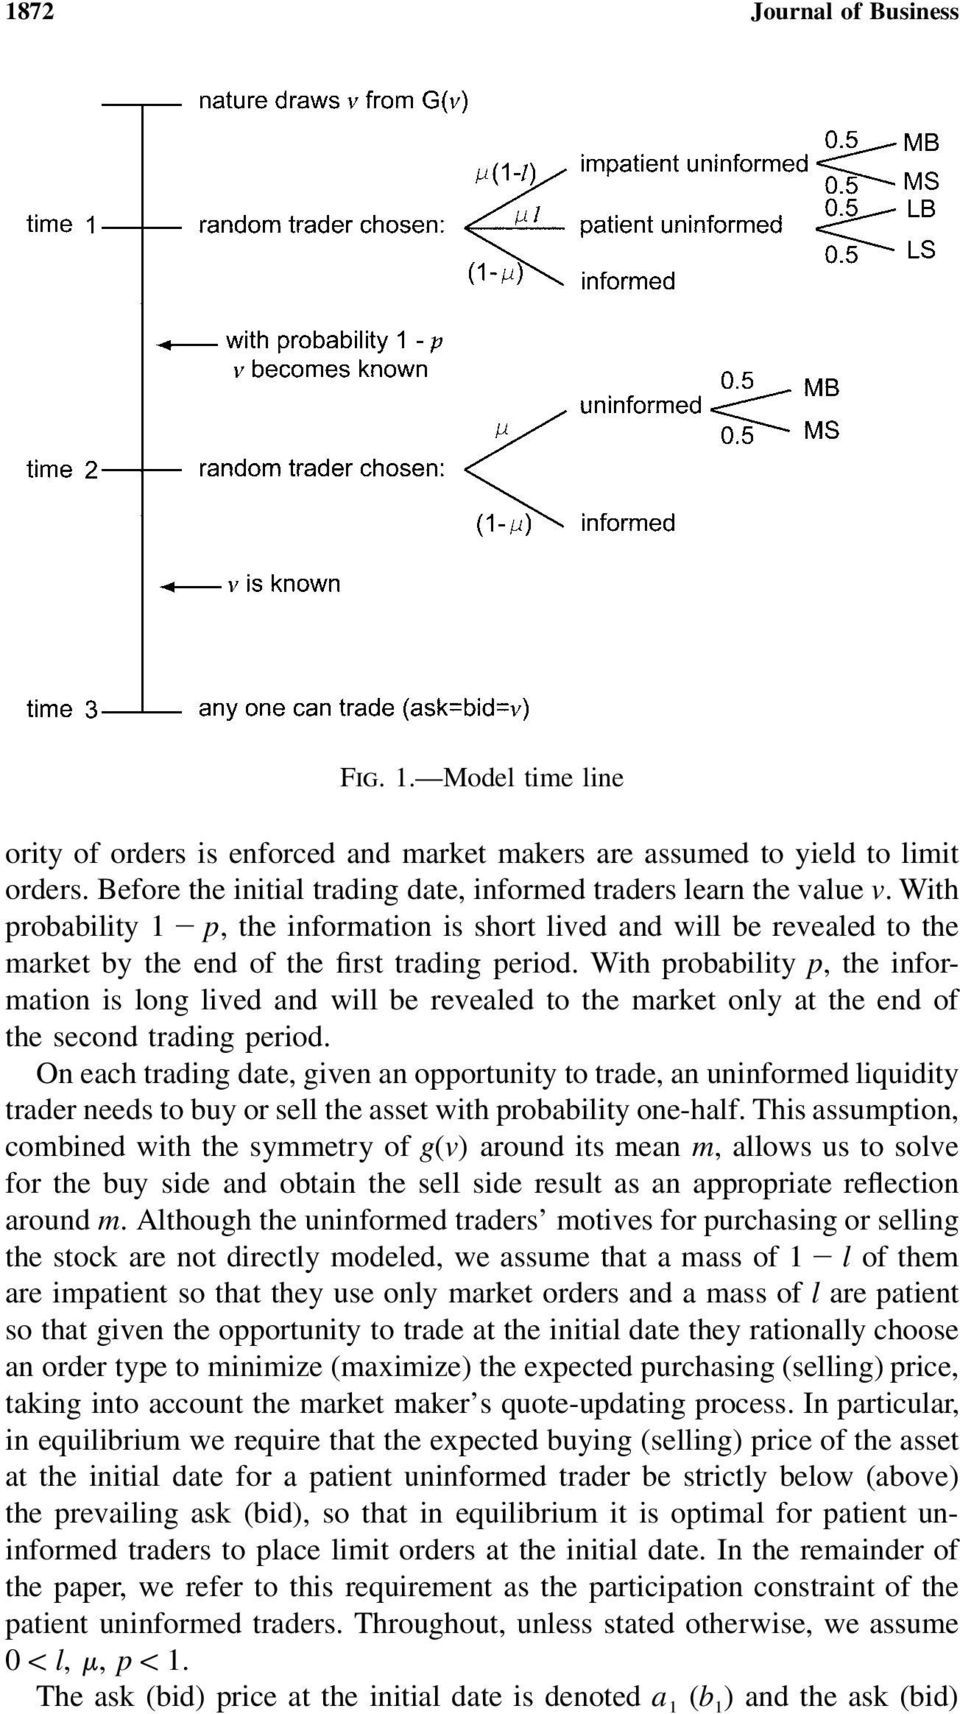 With probability p, the information is long lived and will be revealed to the market only at the end of the second trading period.